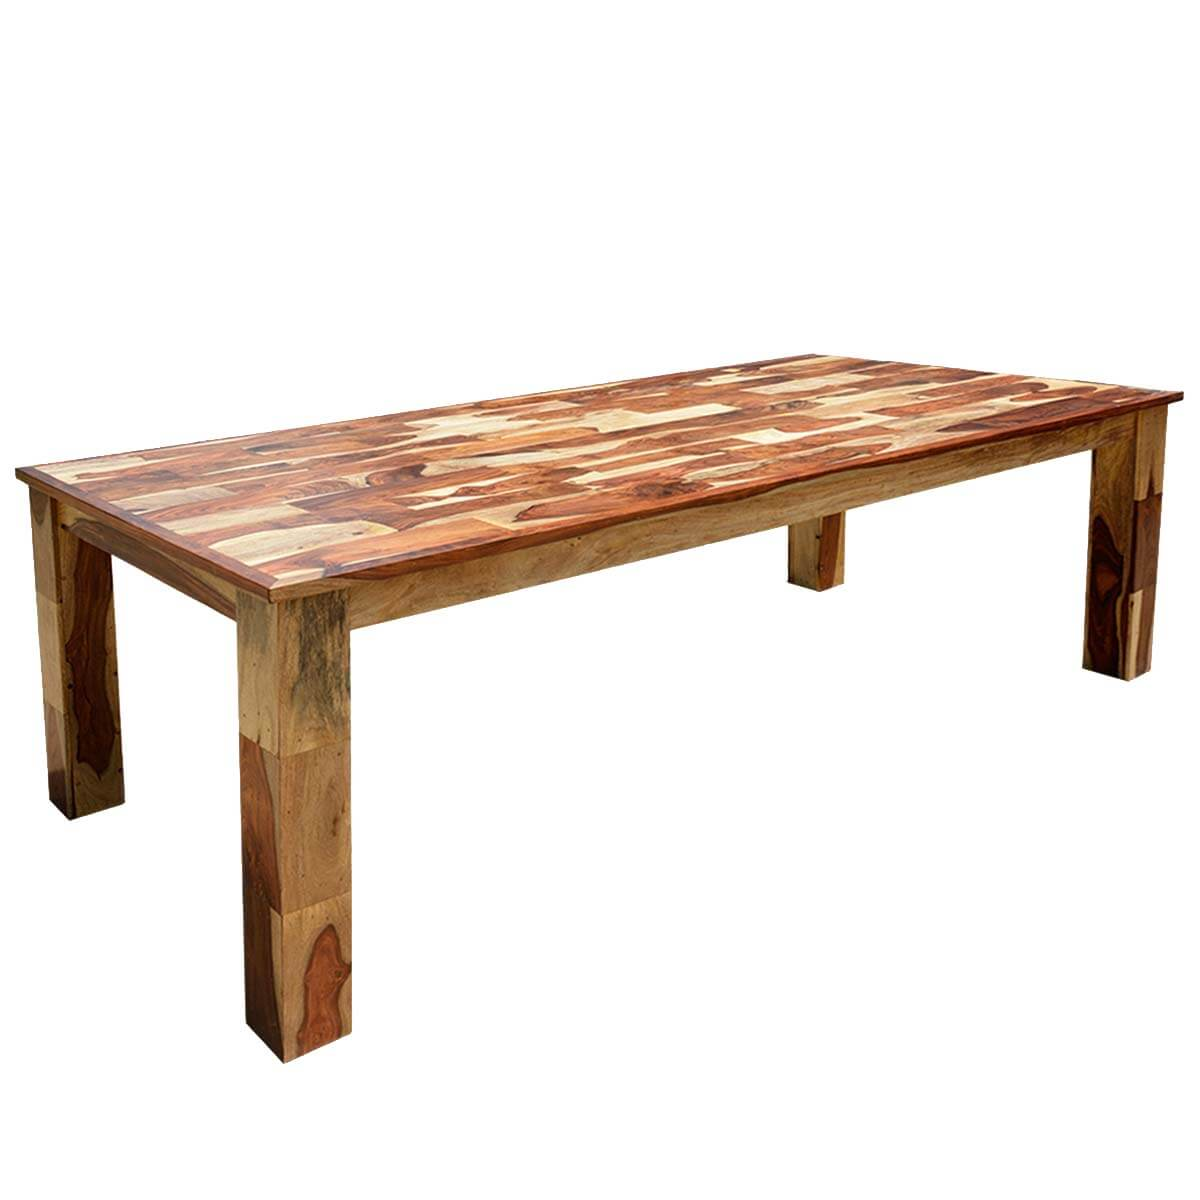 Cariboo rustic solid wood large rectangular dining table for Biggest dining table